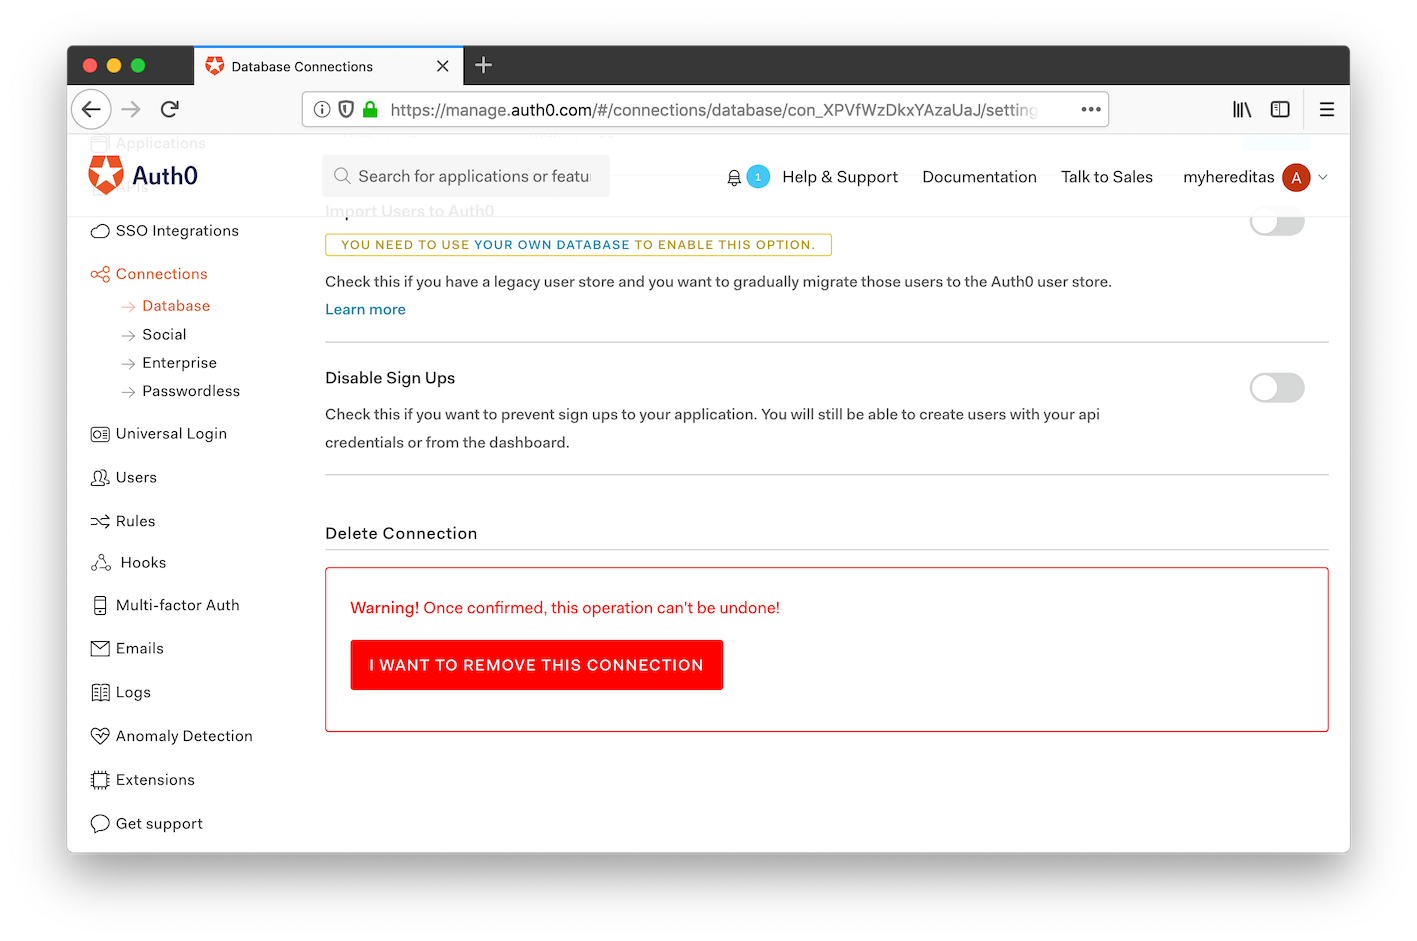 Auth0 management portal: remove the database